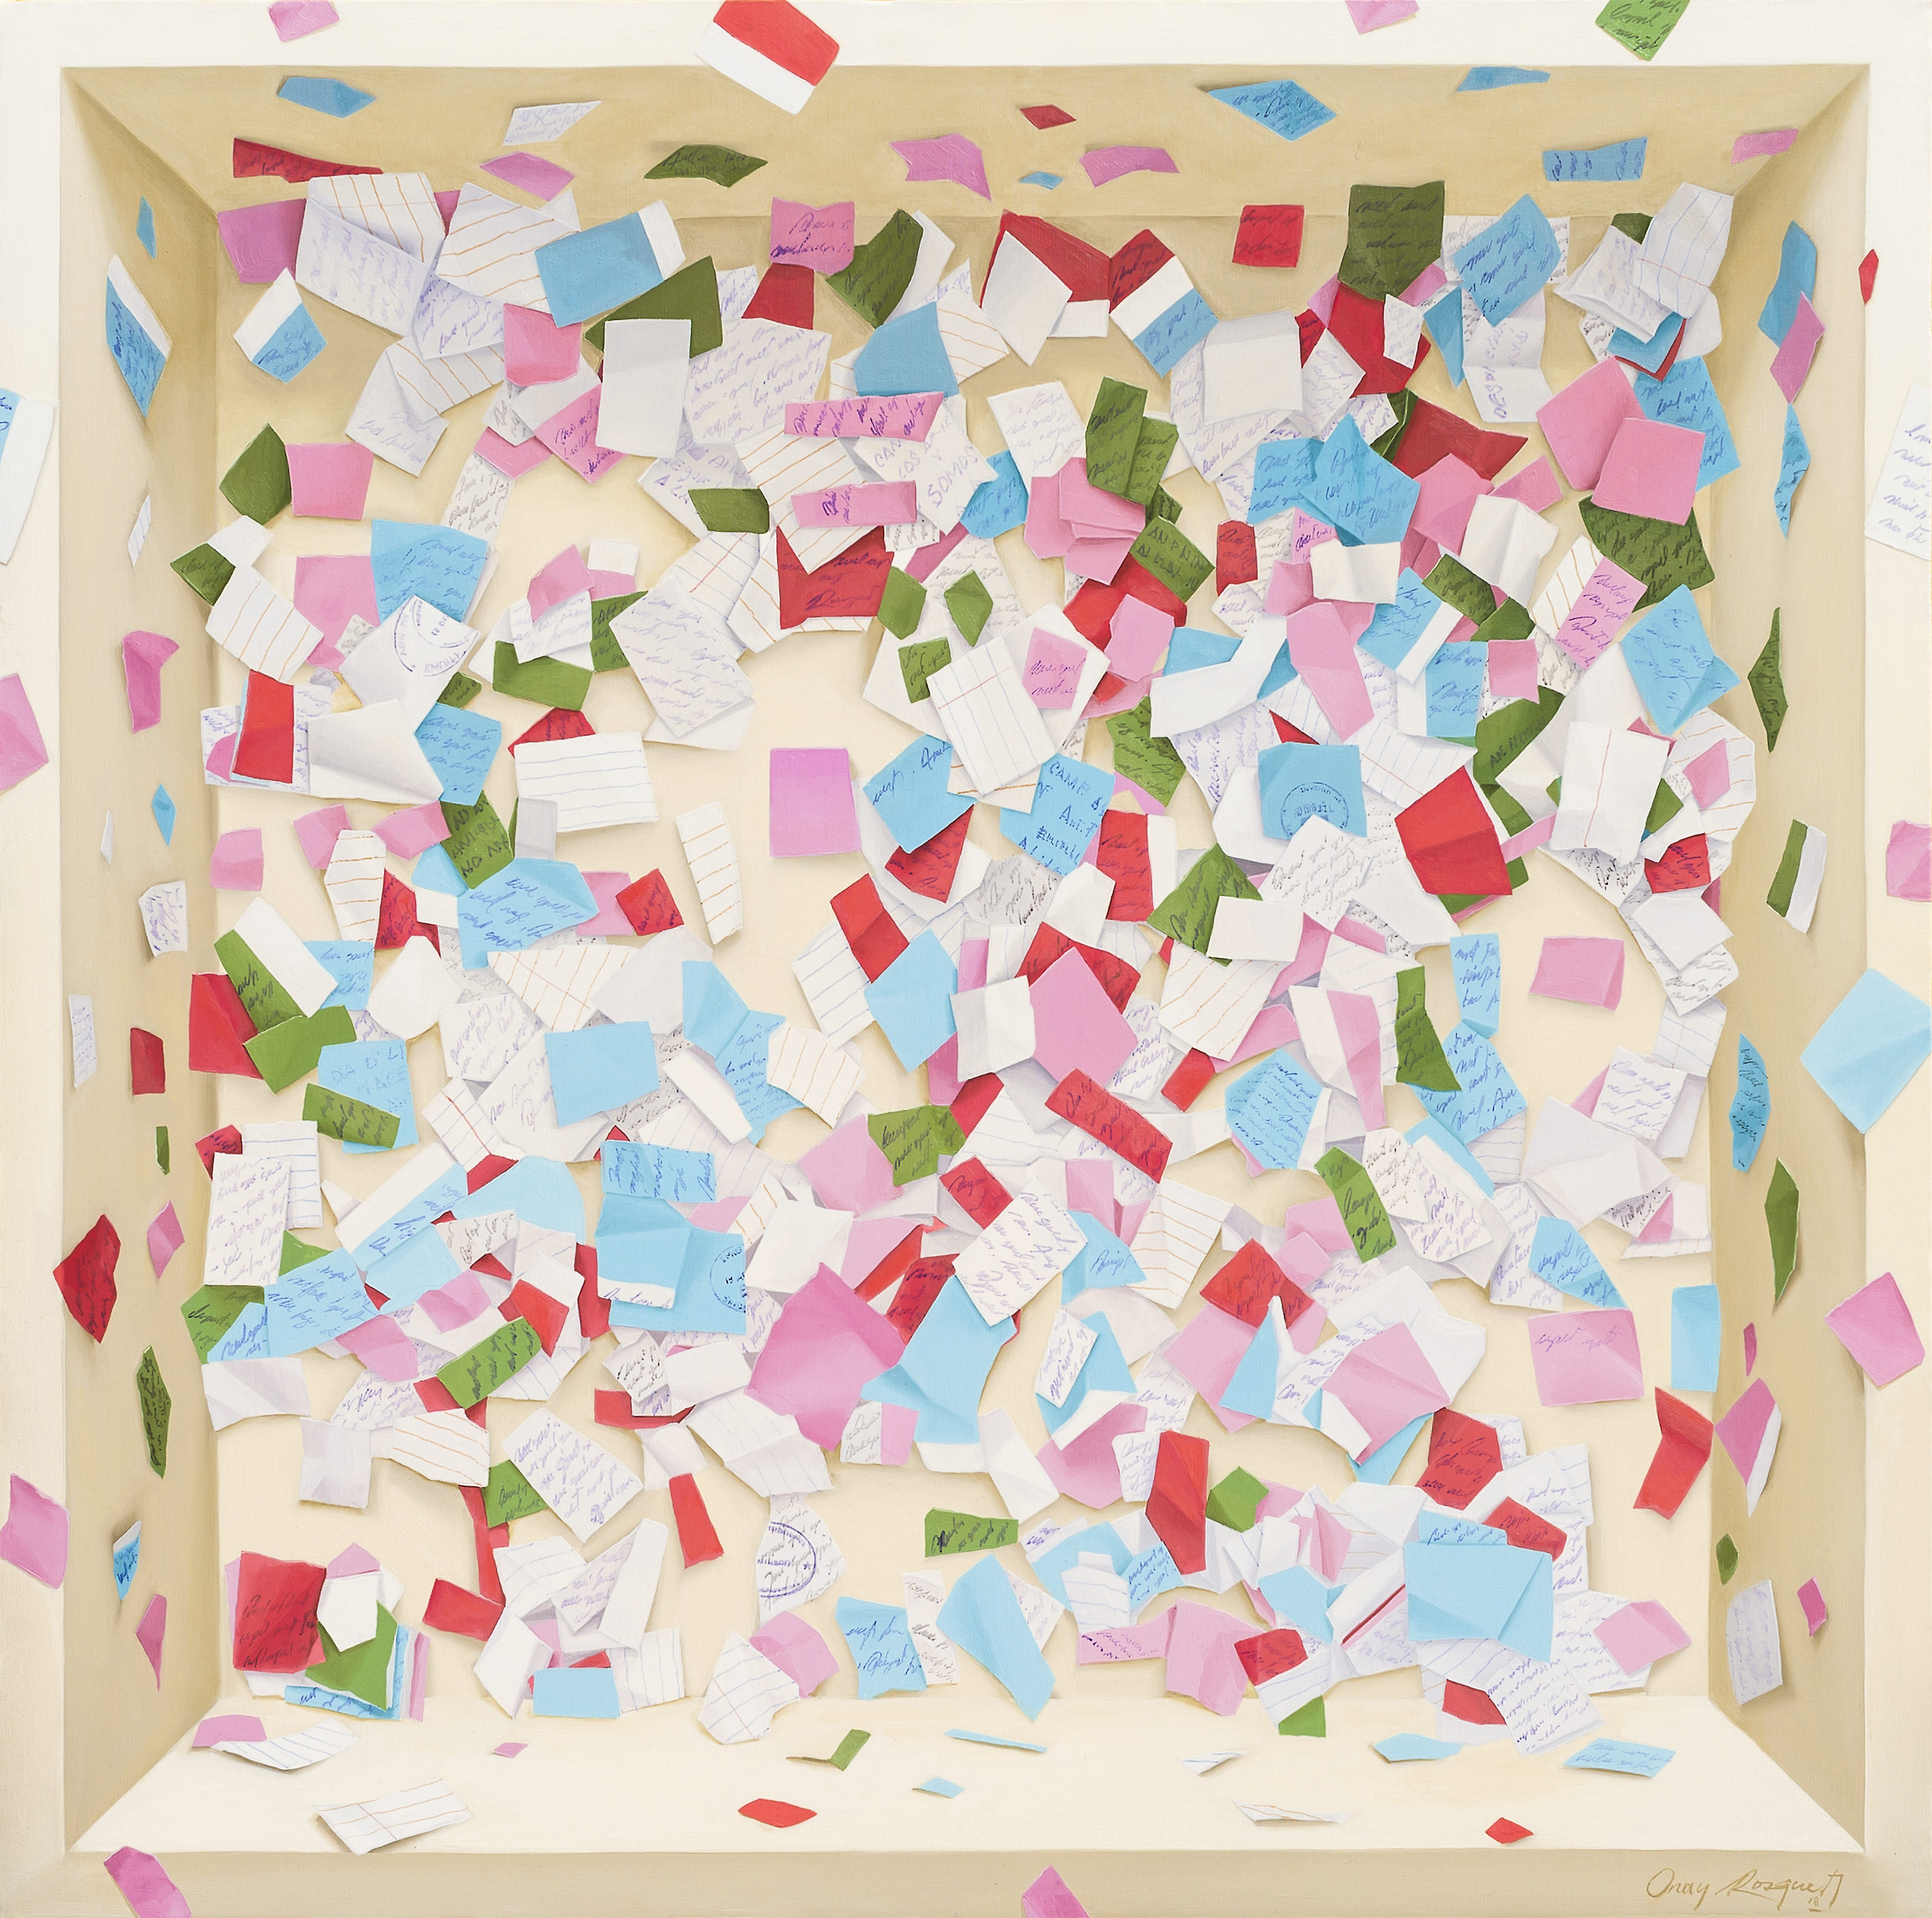 Onay Rosquet - Confetti, 2018, Oil on canvas, 100 x 100 cm